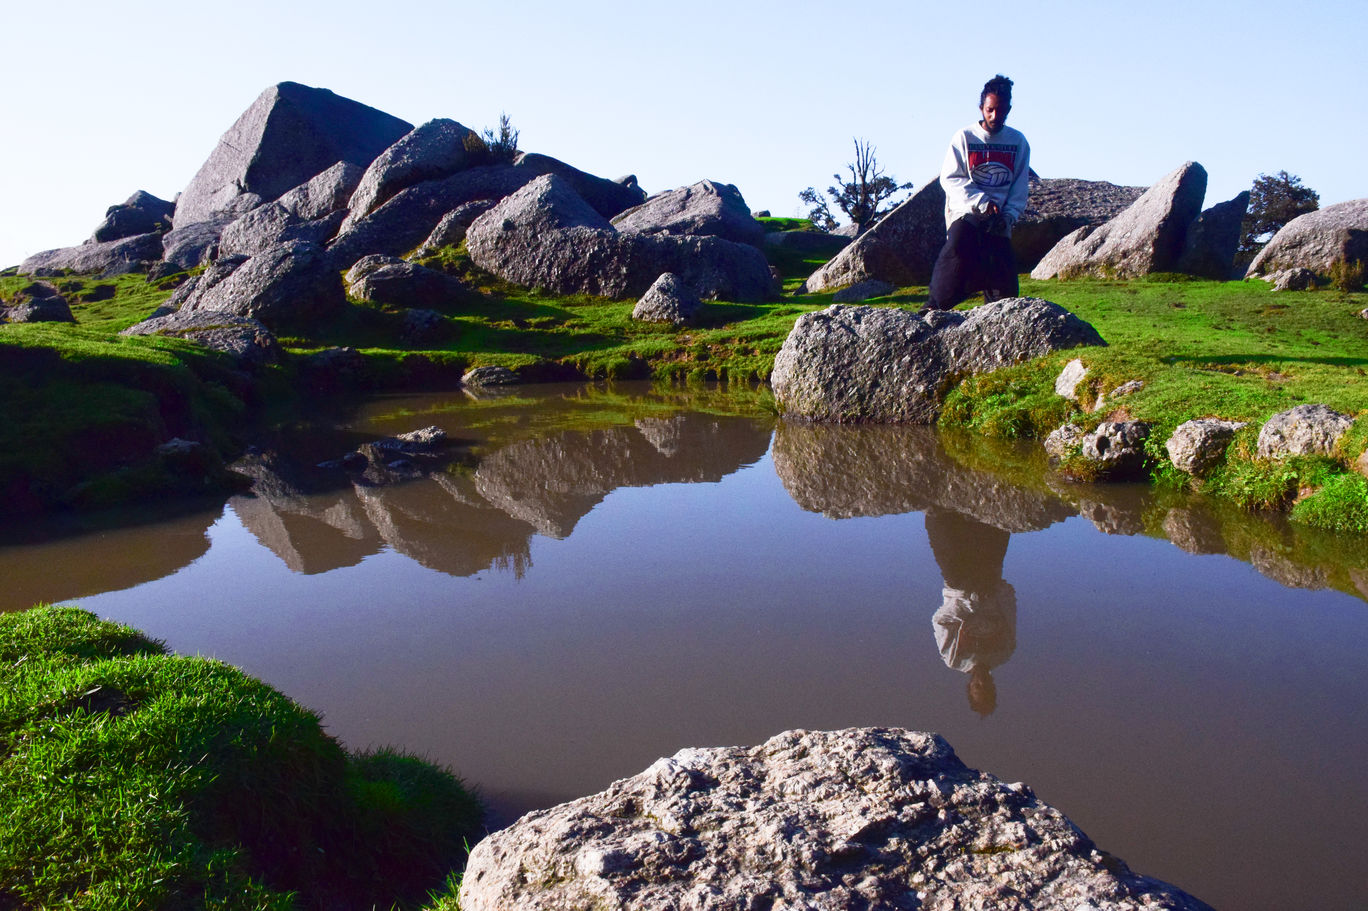 Photo of Triund By Vidisha Pandey